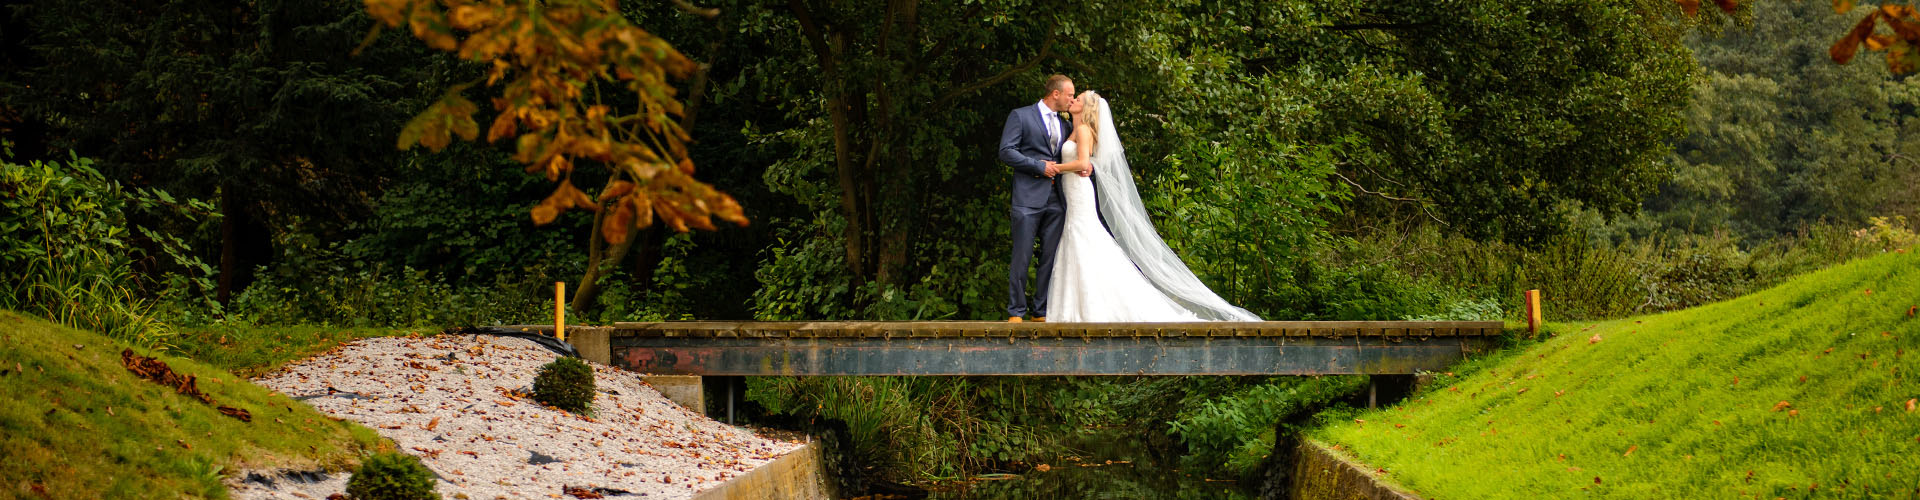 wedding photographer essex 10